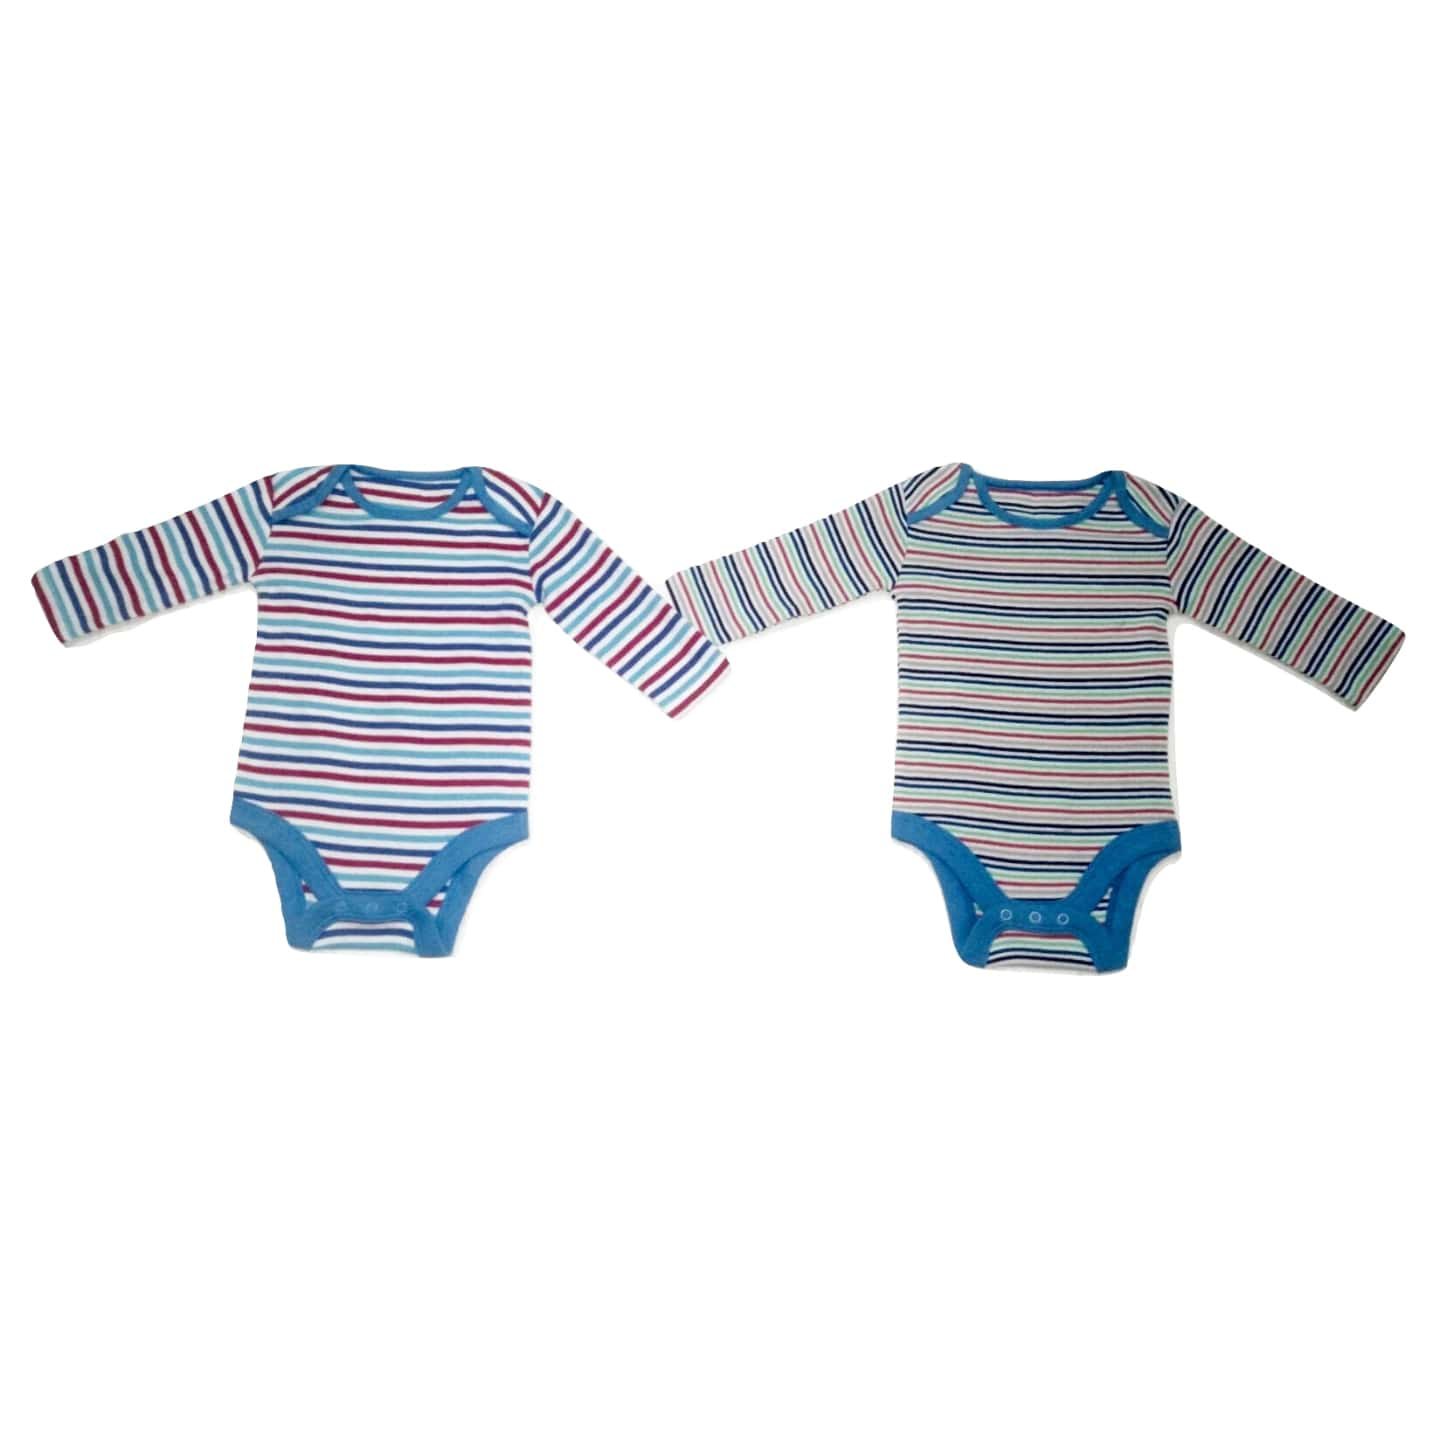 Blue Stripe Multicolour Detail 2 Pack Baby Boys Longsleeve Bodysuit